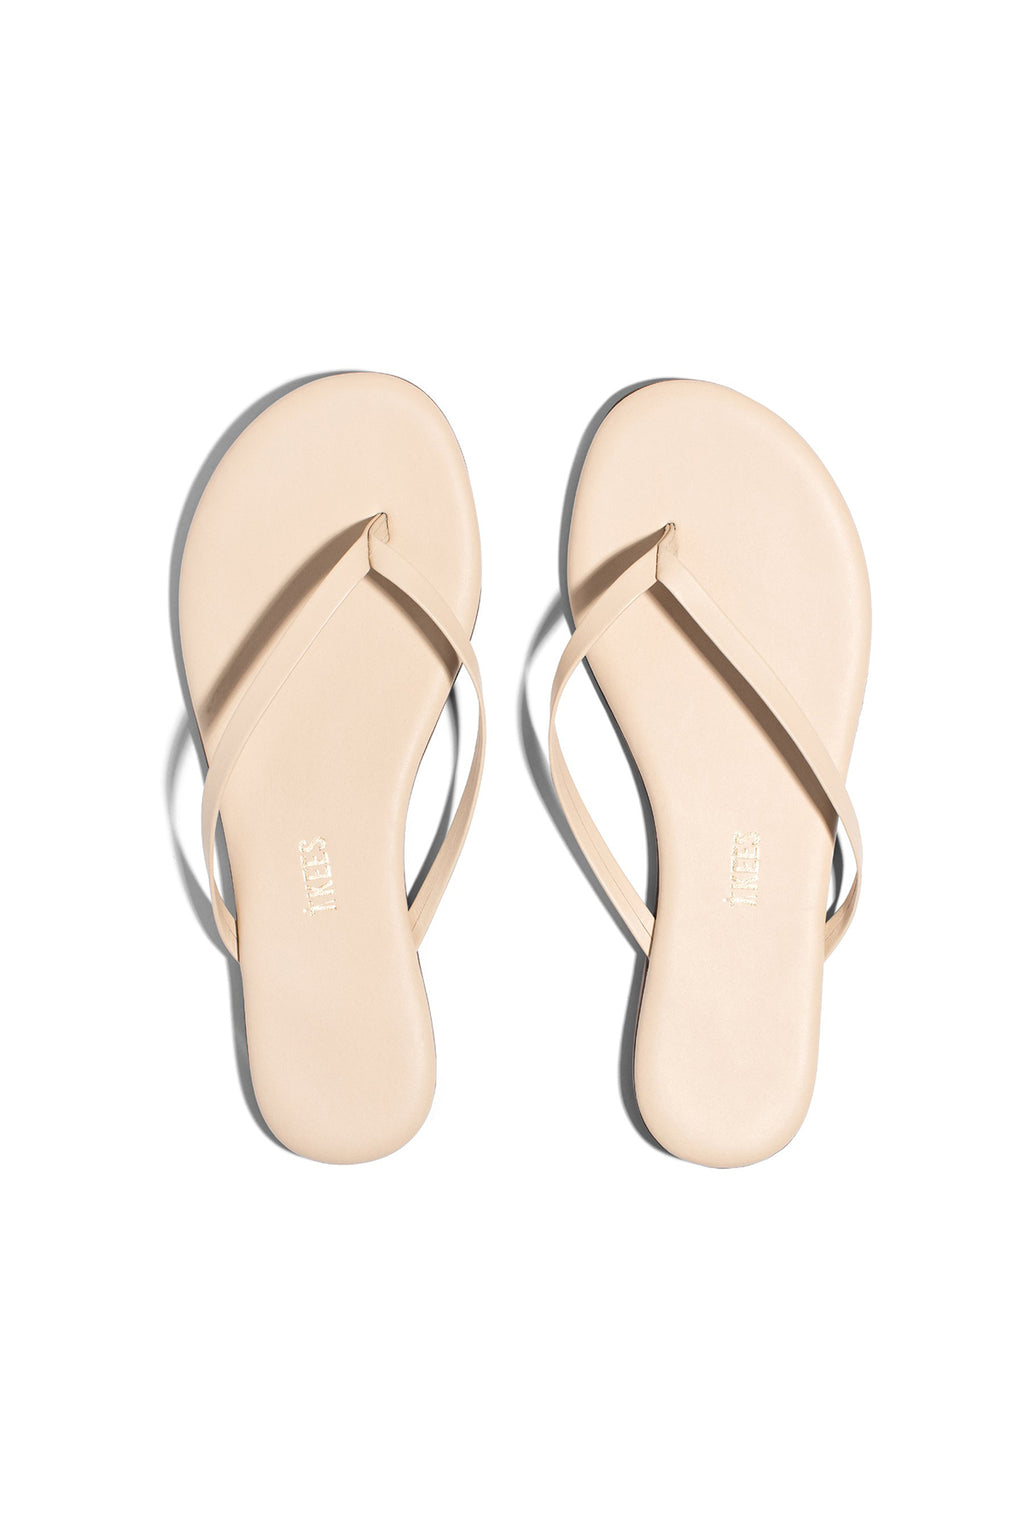 Foundations Nudes Sandal